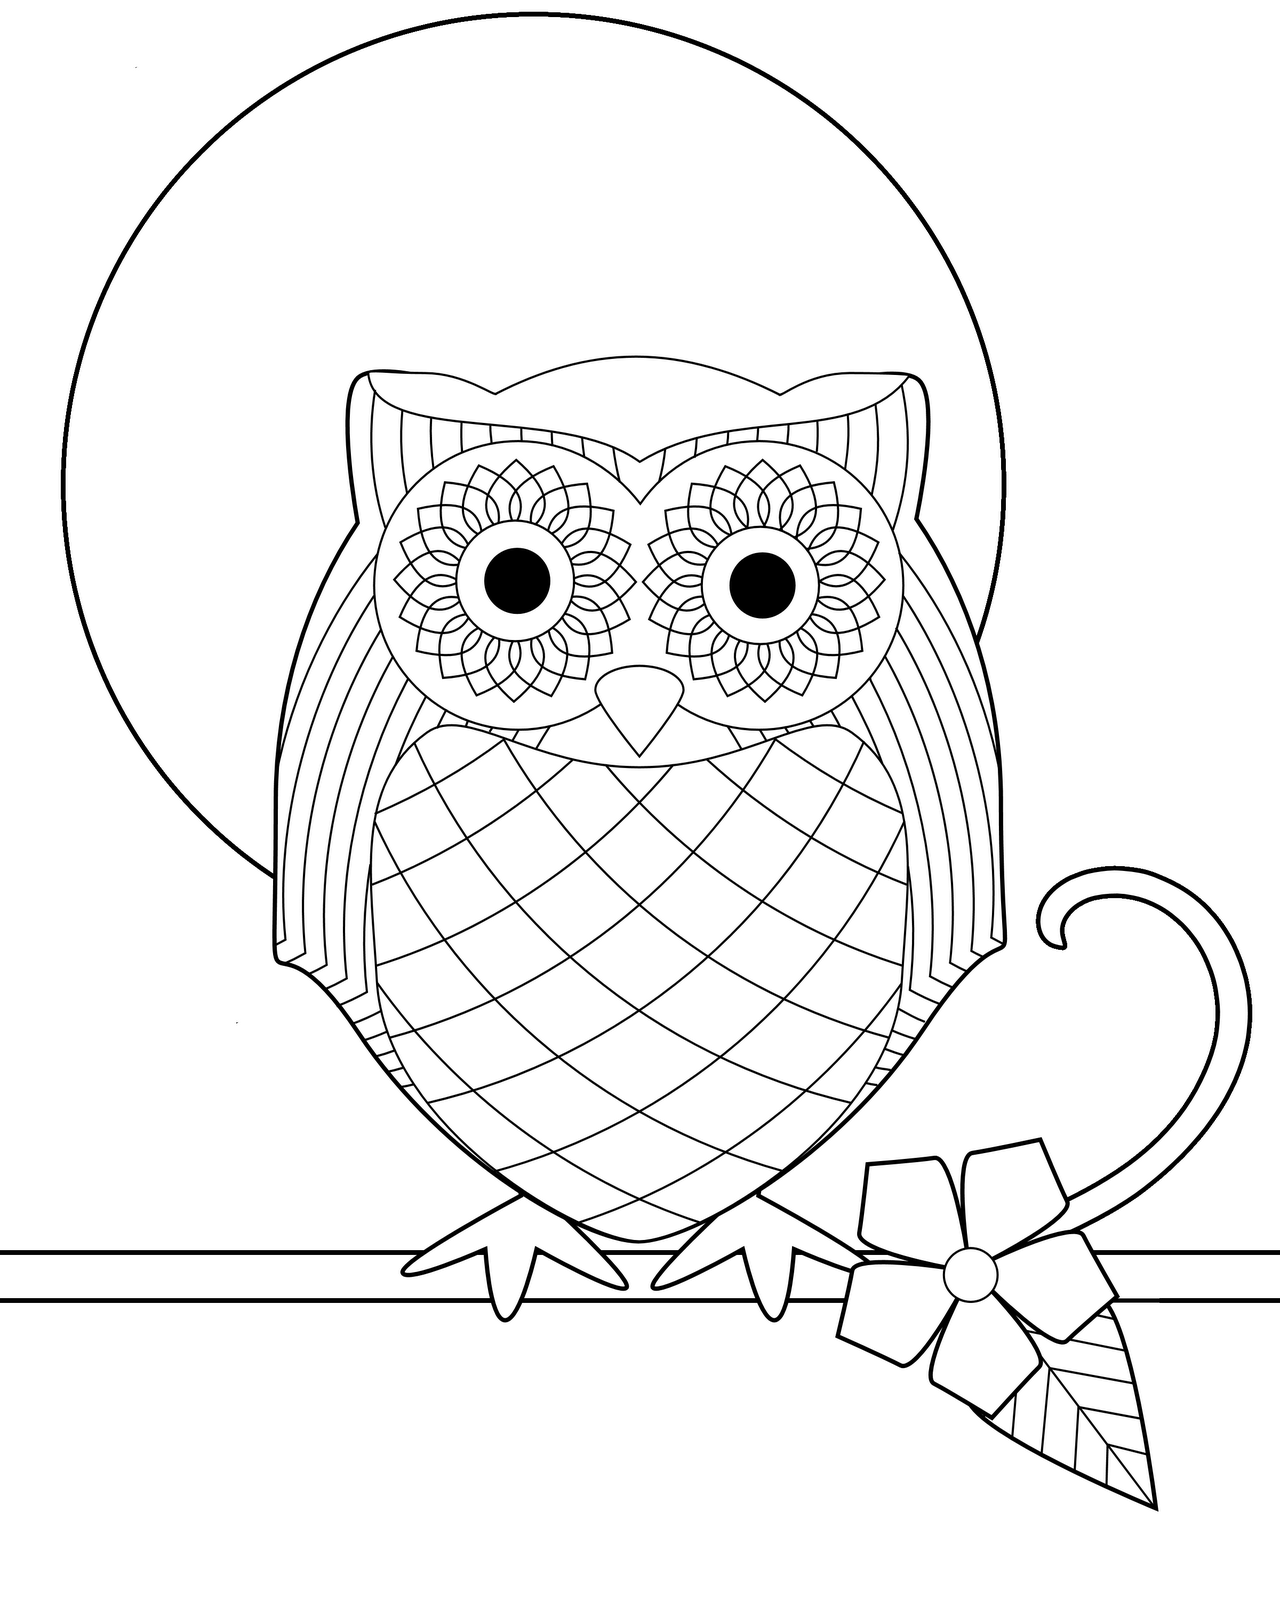 1280x1600 Free Printable Owl Coloring Pages For Kids Coloring Pages Of Owls